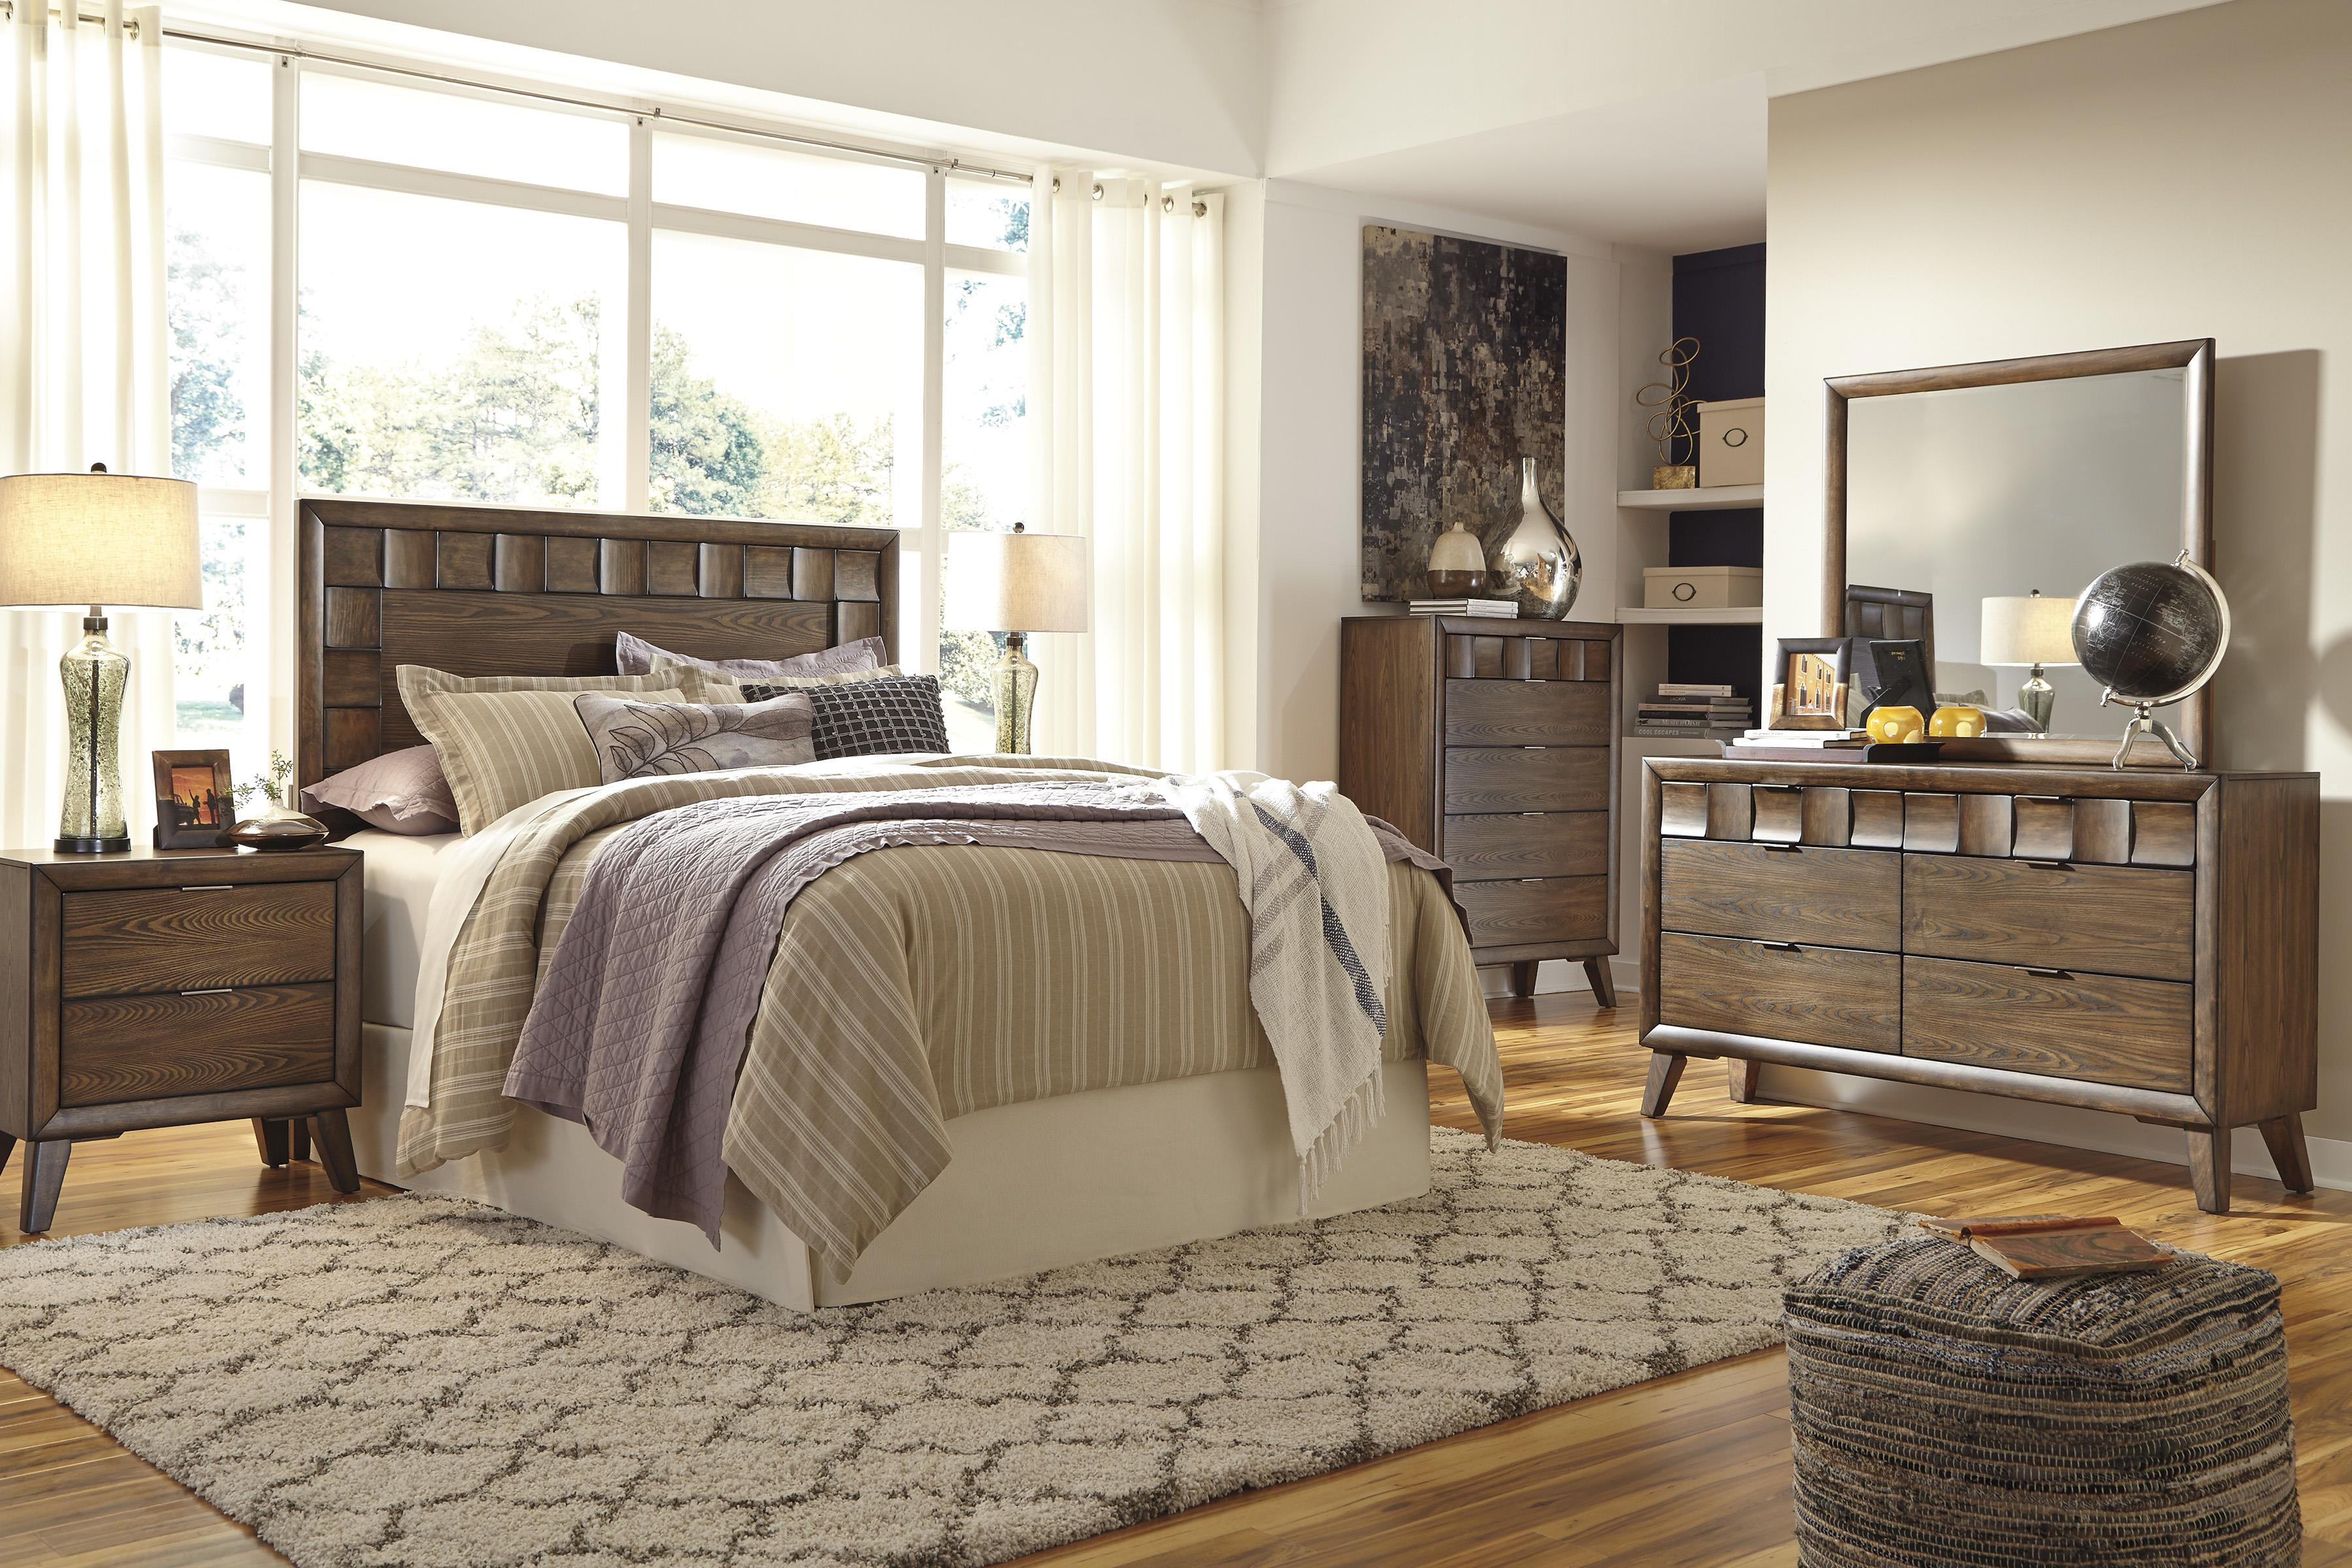 Signature Design by Ashley Debeaux Queen Bedroom Group - Item Number: B535 Q Bedroom Group 1